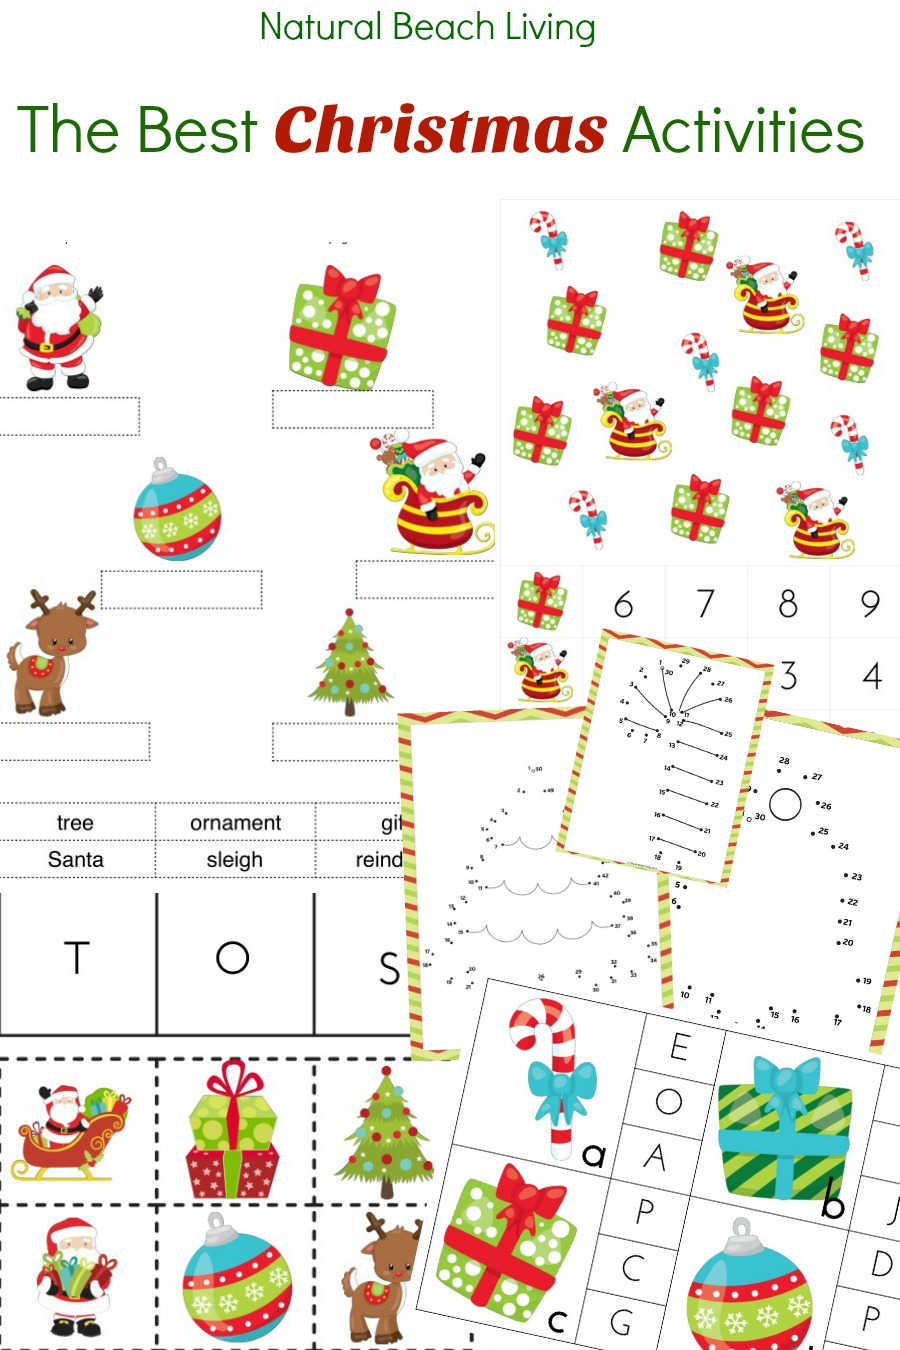 graphic regarding Printable Christmas Activities known as The Least difficult Xmas Pursuits for Small children - Xmas